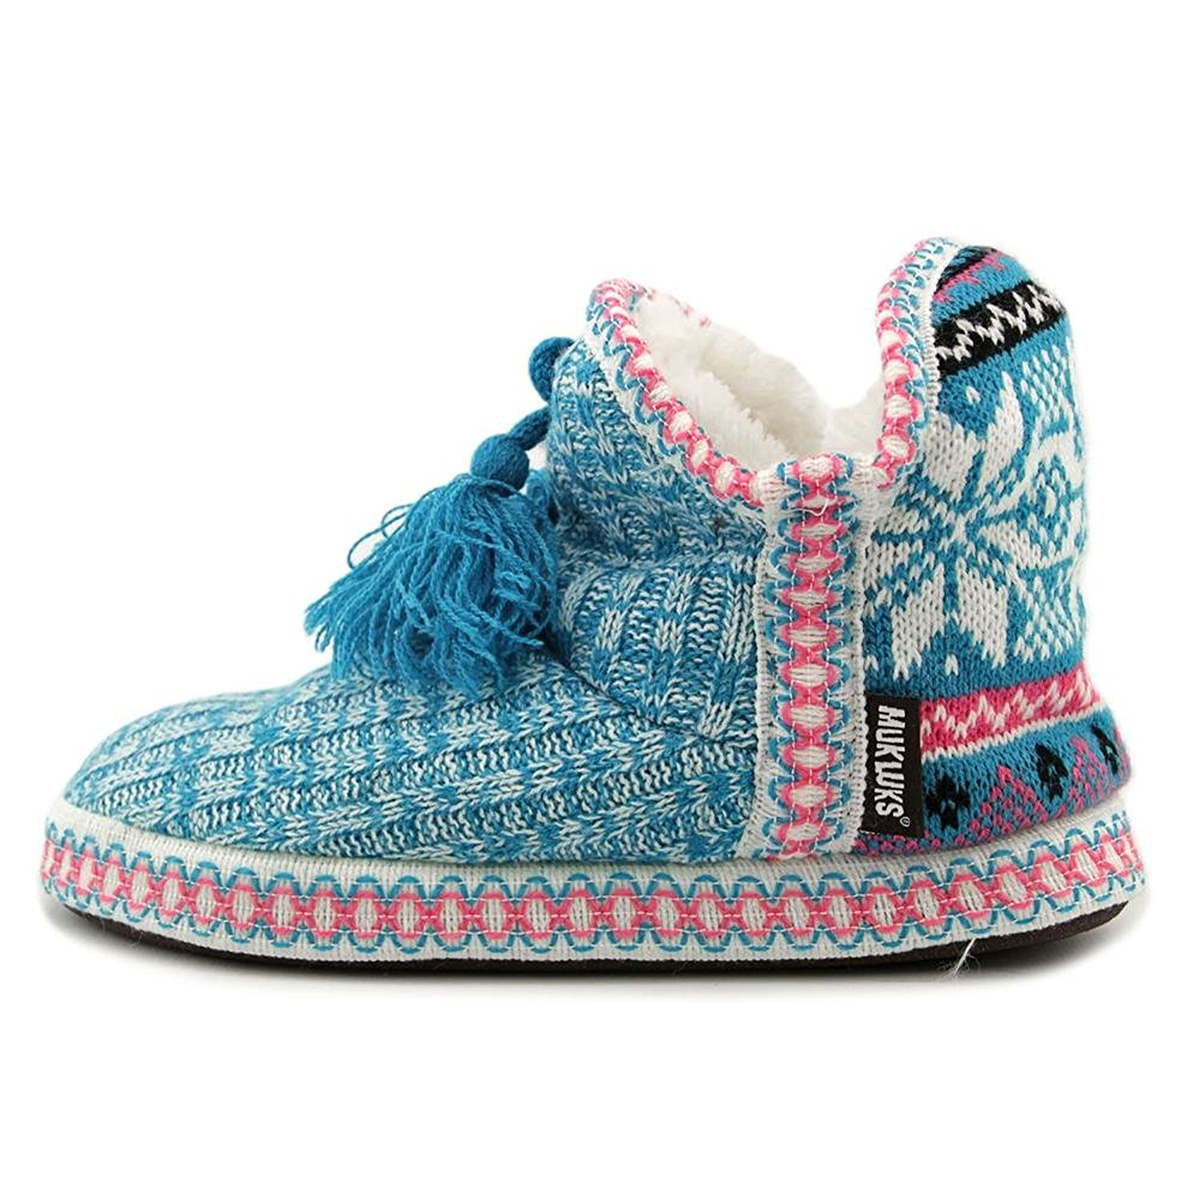 muk luks womens slipper boots indoor house shoes